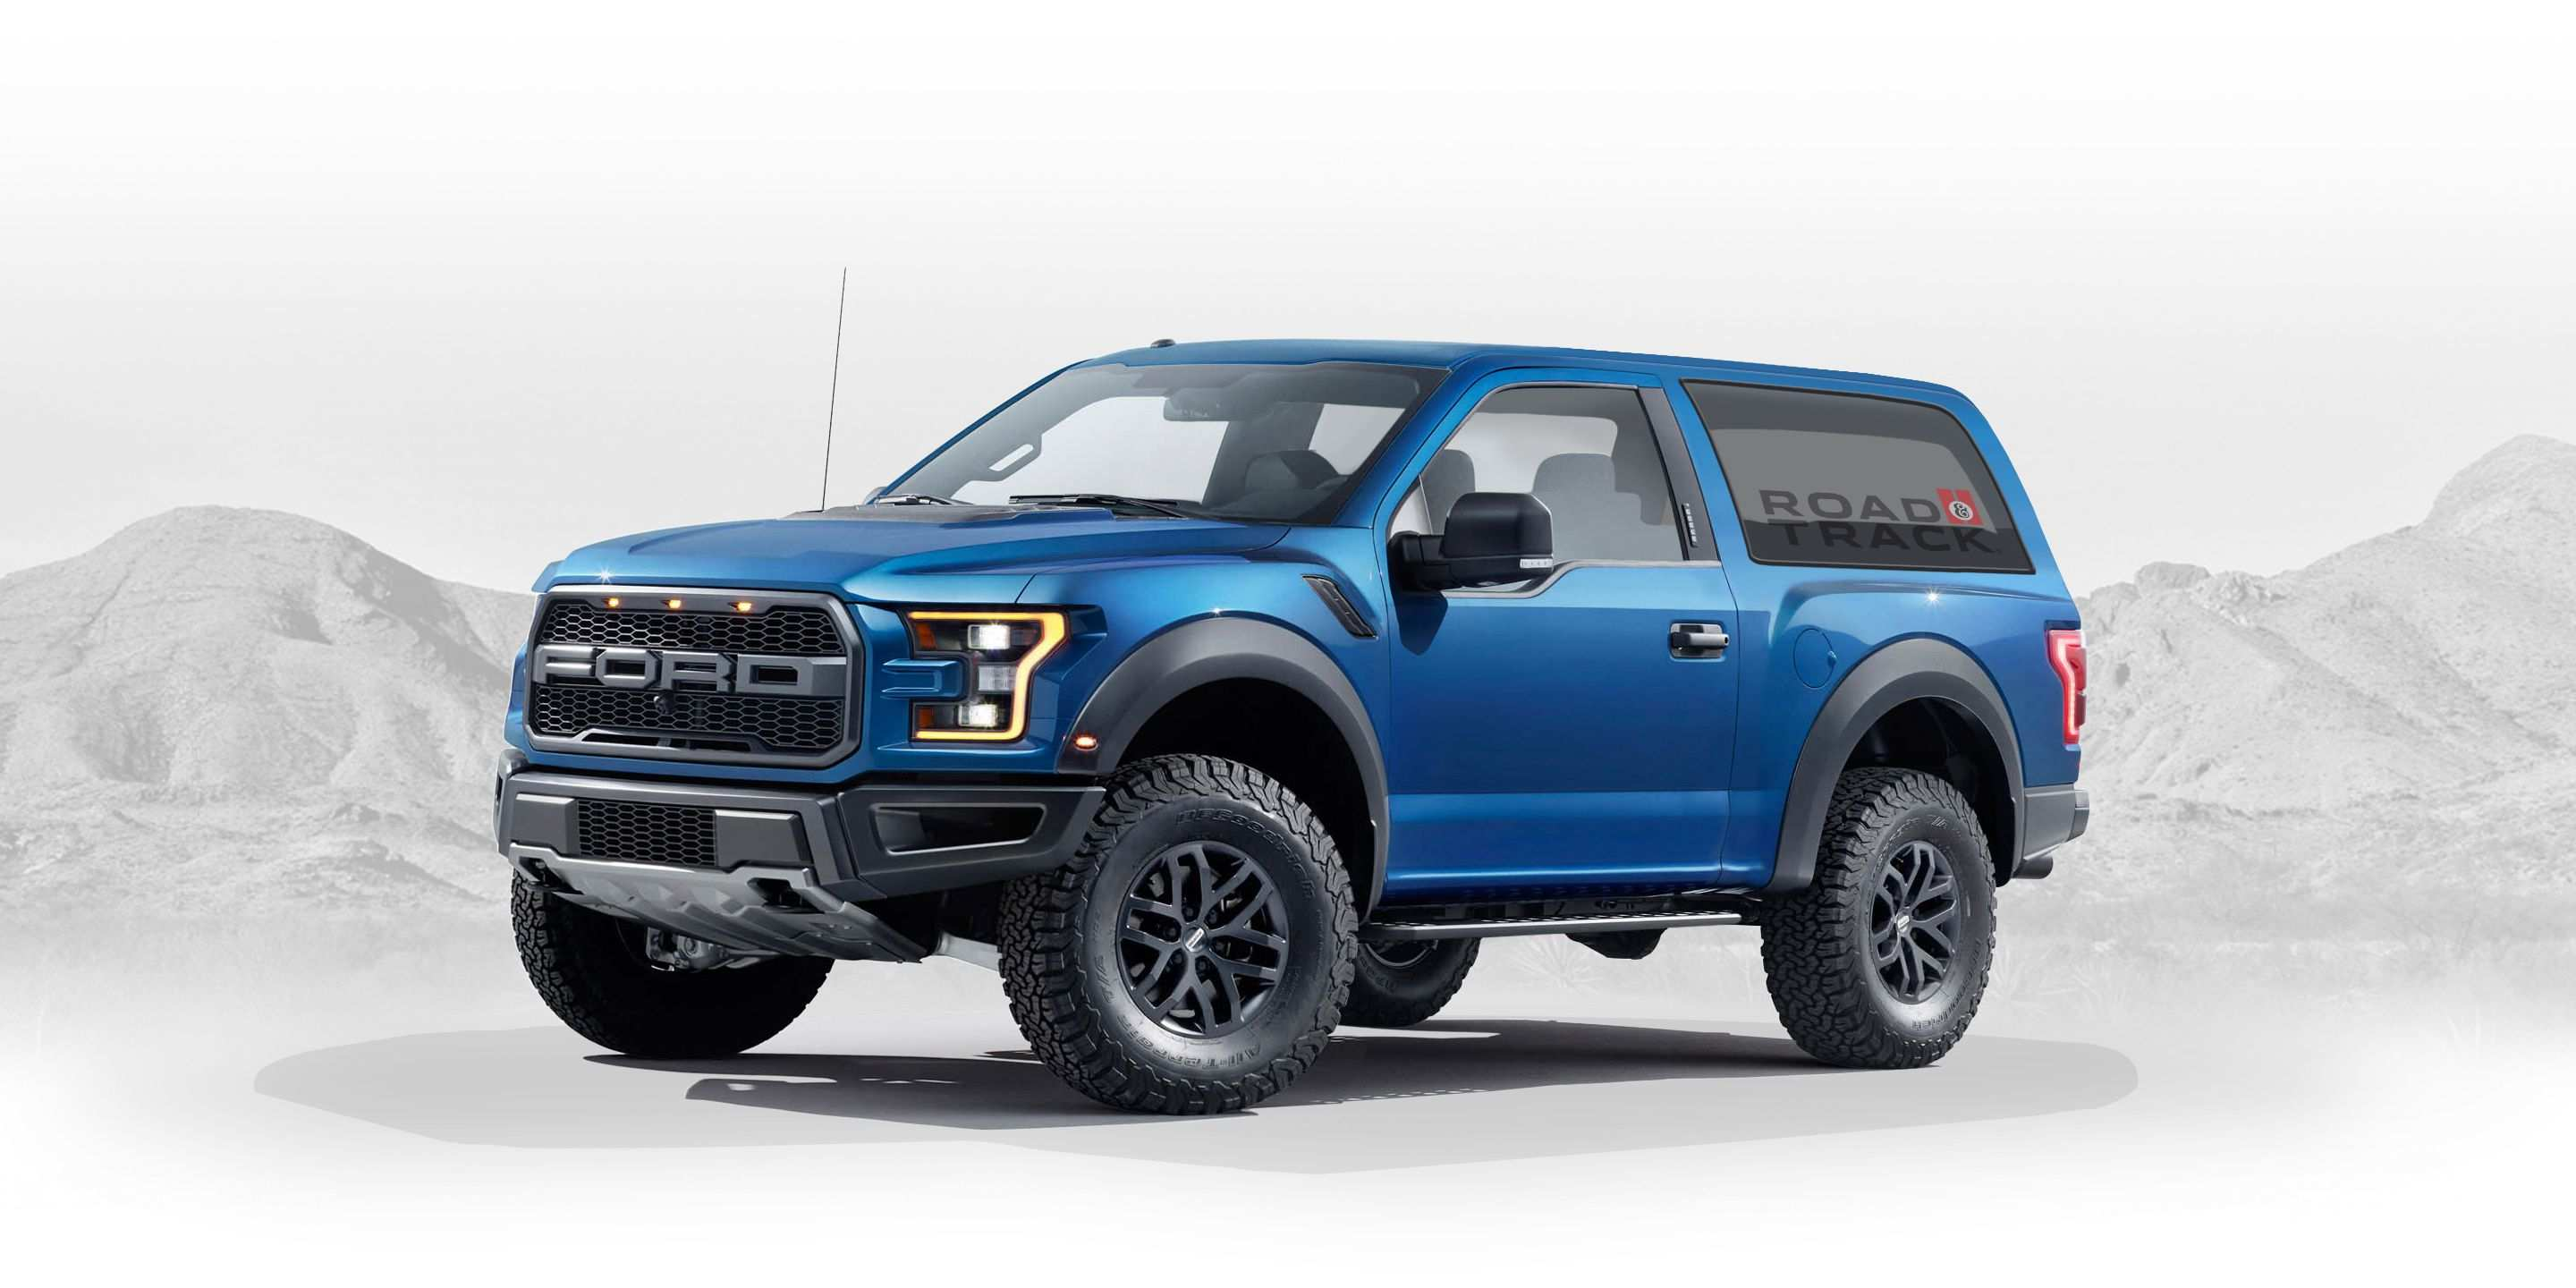 33 Great 2020 Ford Bronco Order Speed Test by 2020 Ford Bronco Order